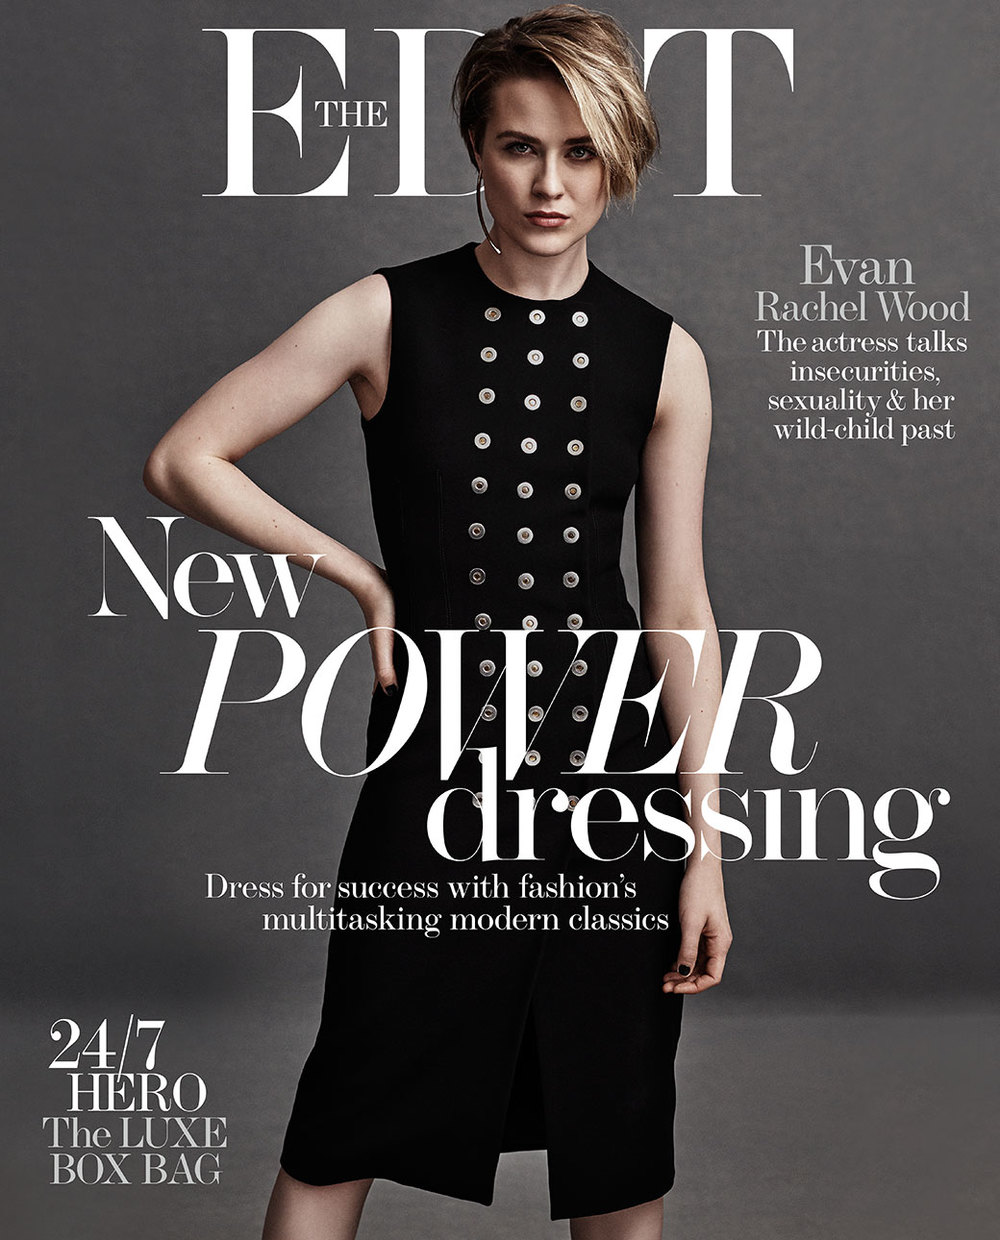 Evan Rachel Wood Cover.jpg